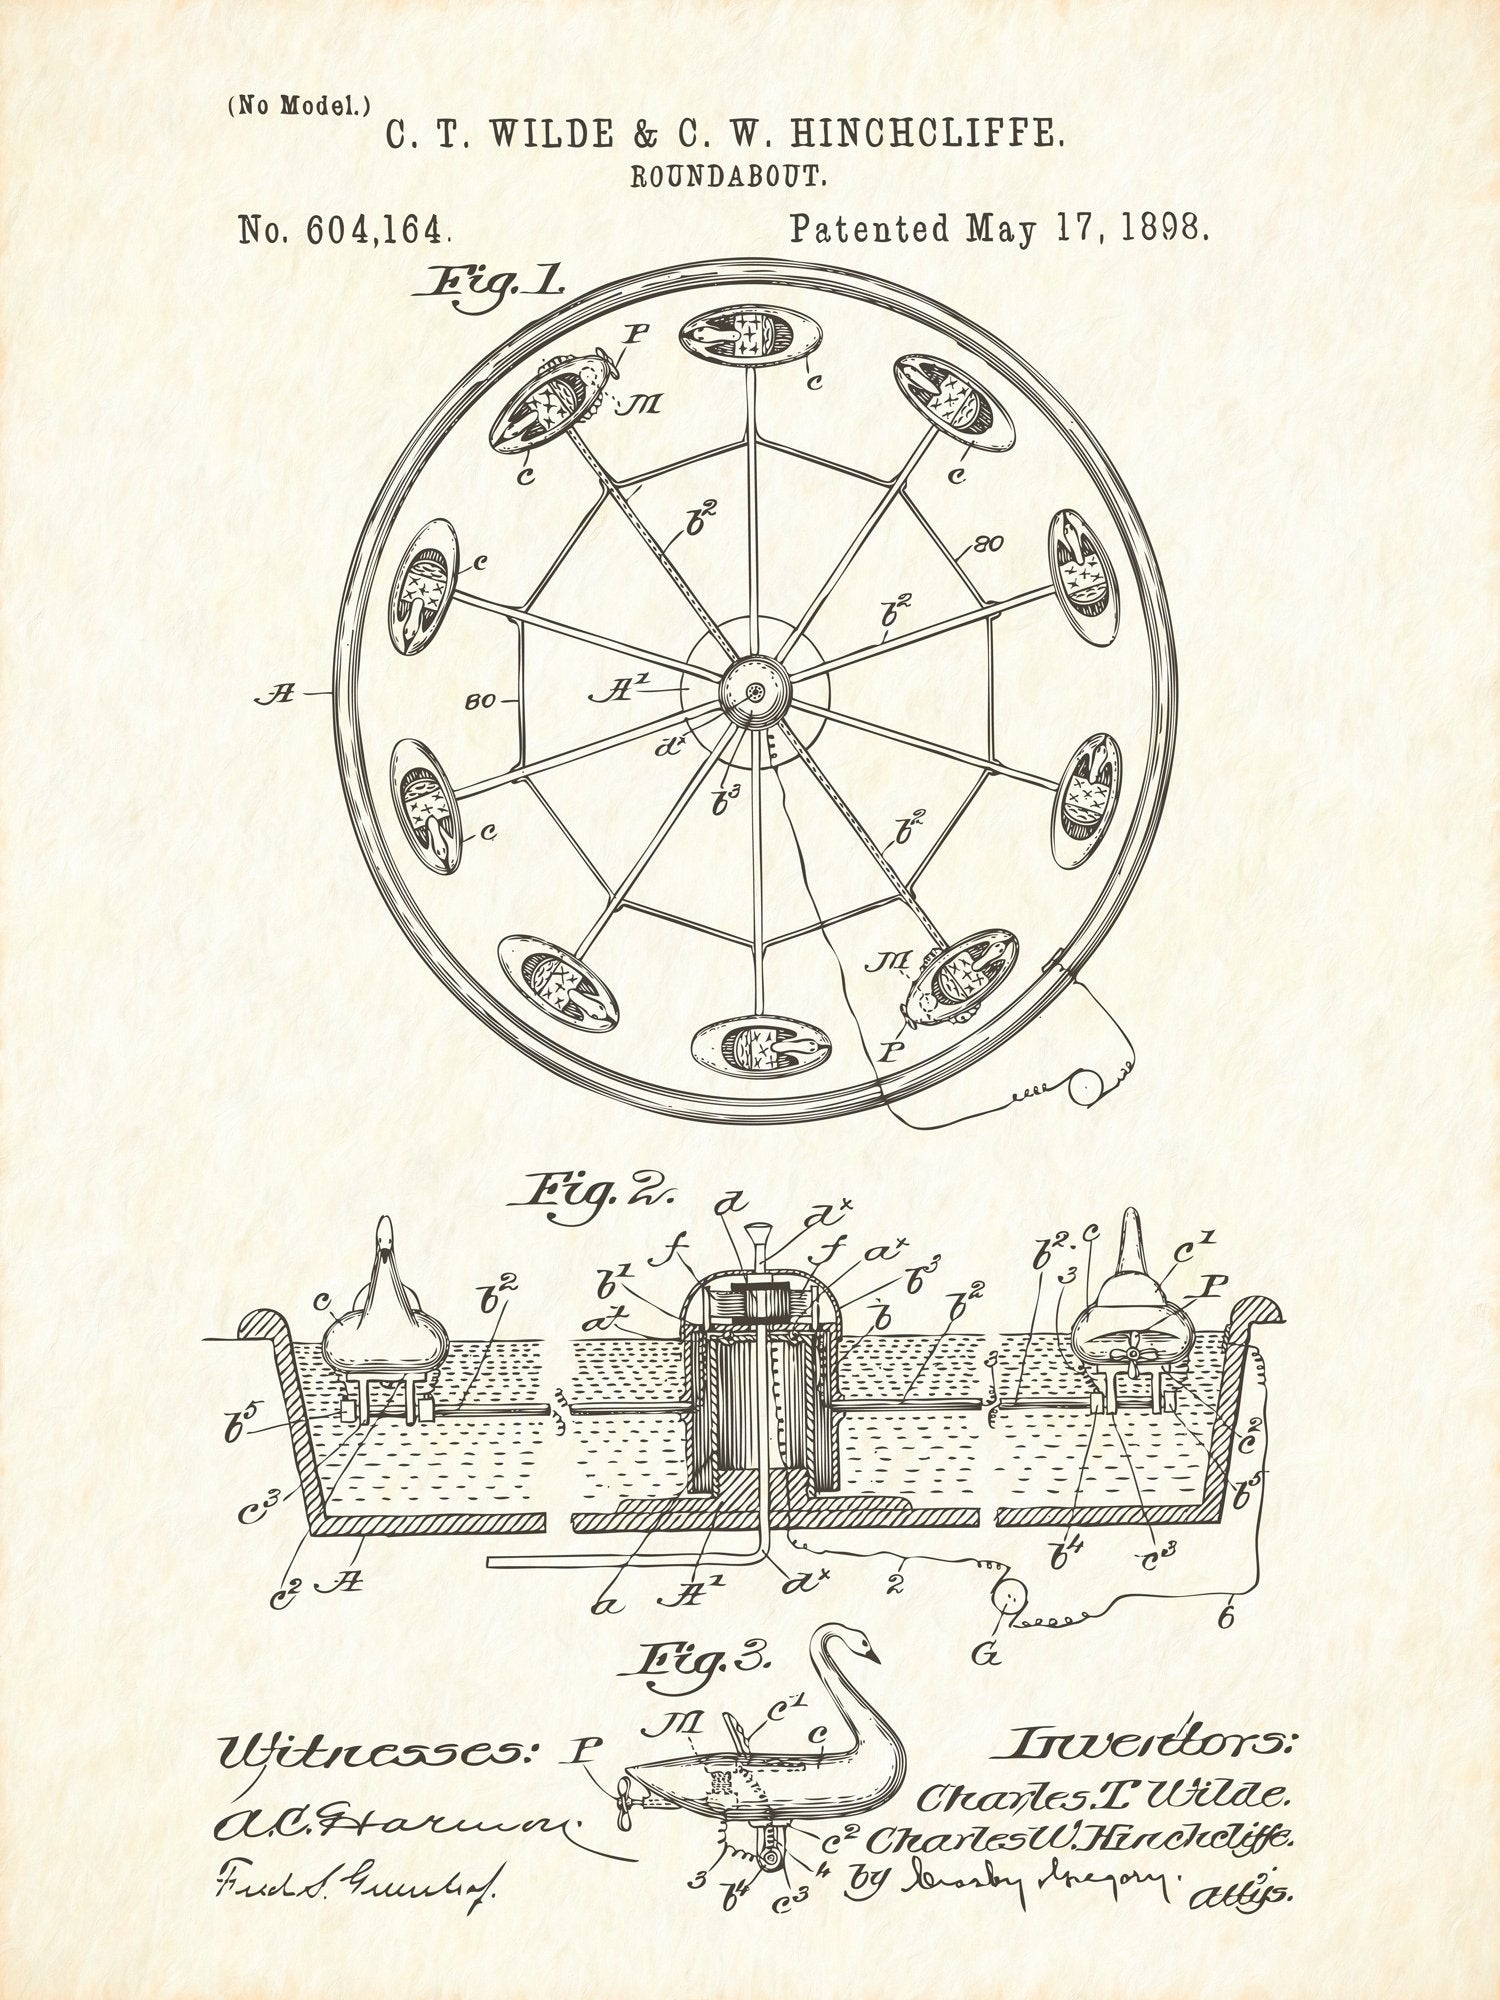 U.S. Patent No. 604164-1 Roundabout Reworked, Series 1